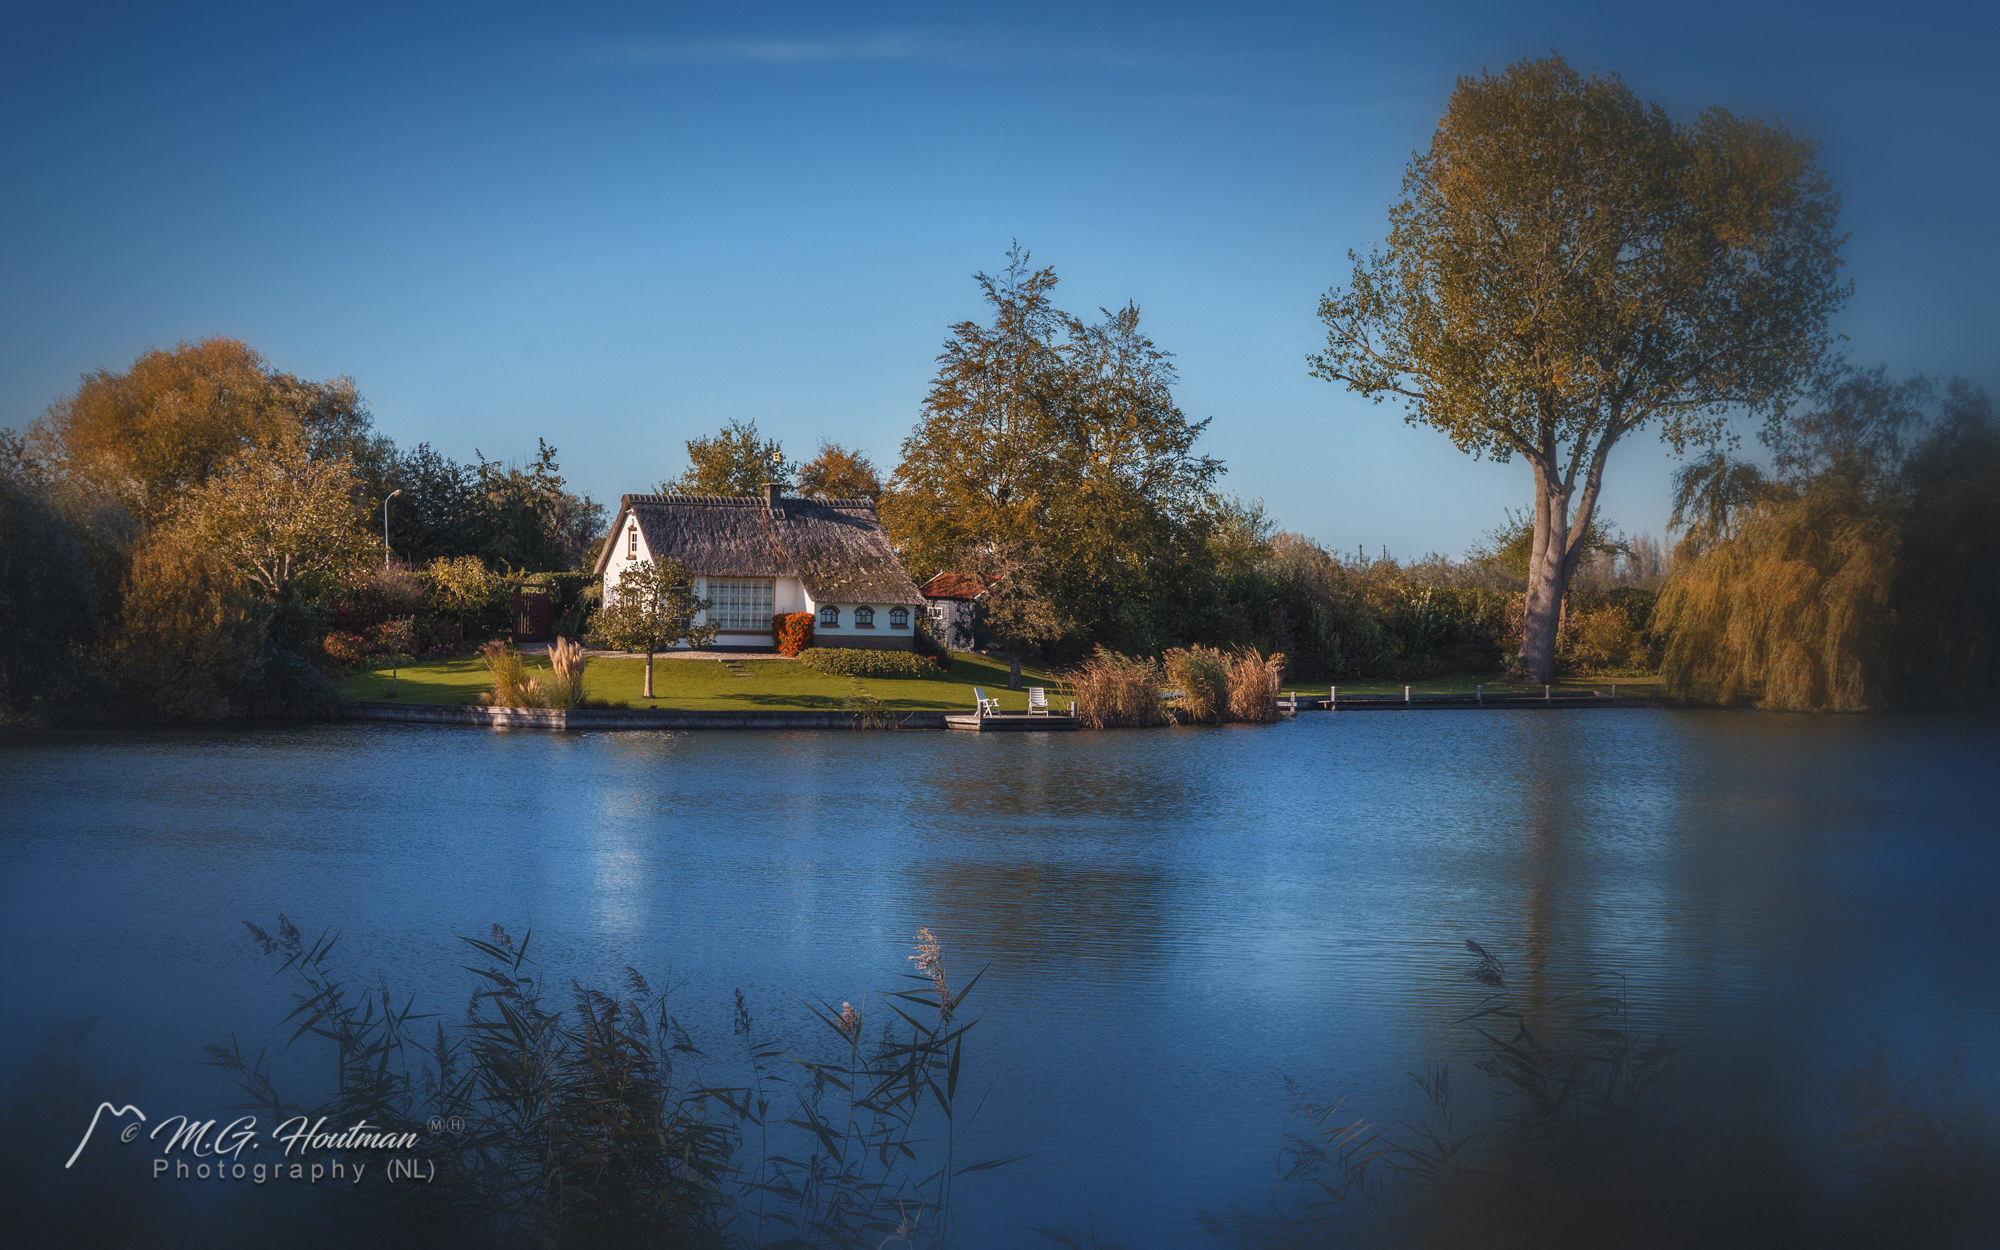 House on the Linge